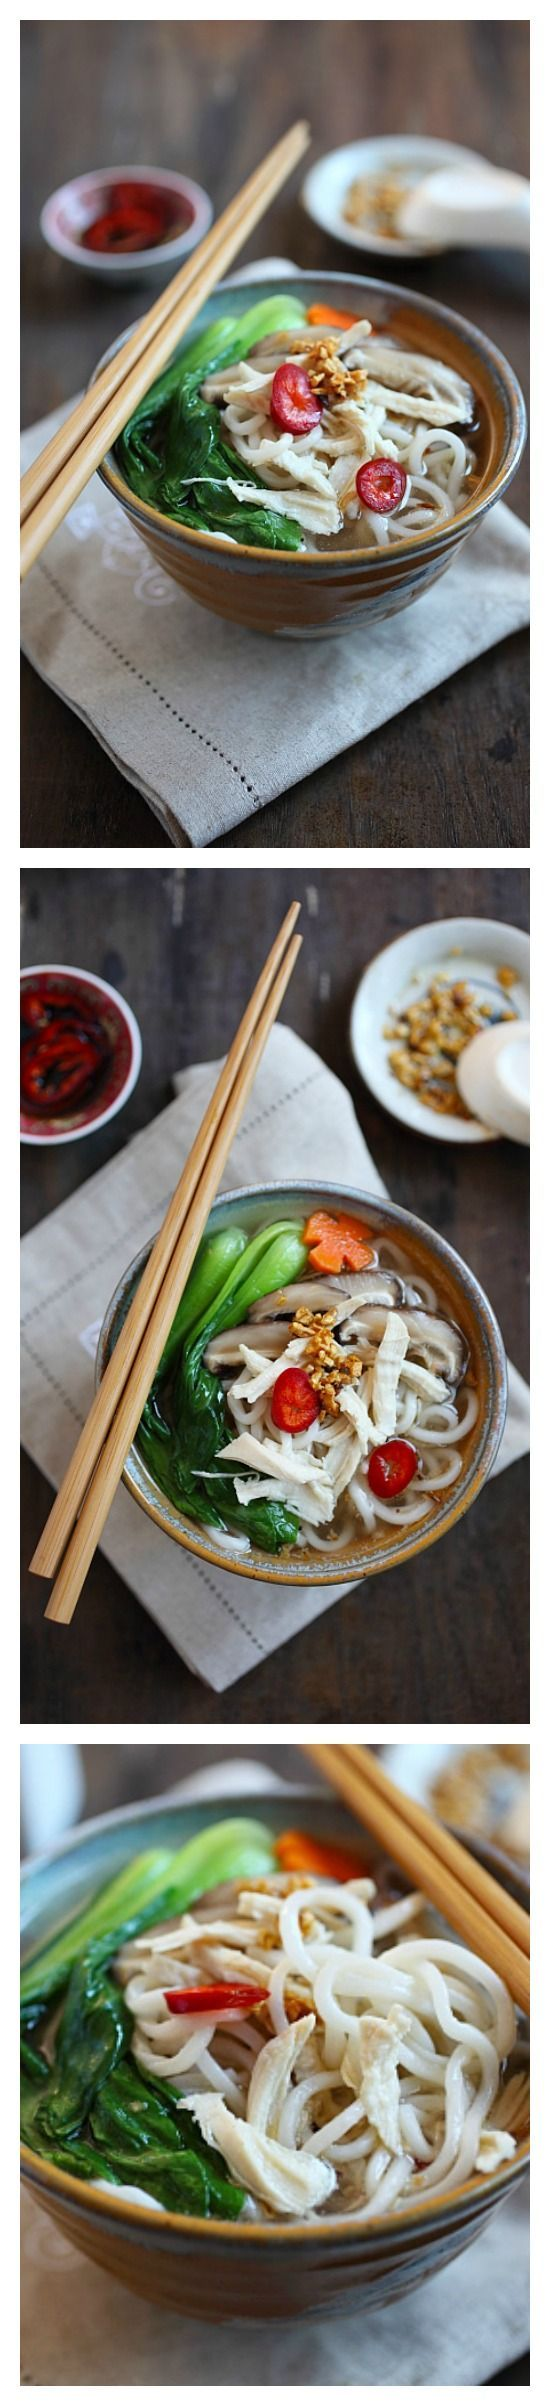 Chinese Chicken Noodle Soup Recipe. Hearty, yummy, and healthy. Make this easily at home with store-bought ingredients   rasamalaysia.com